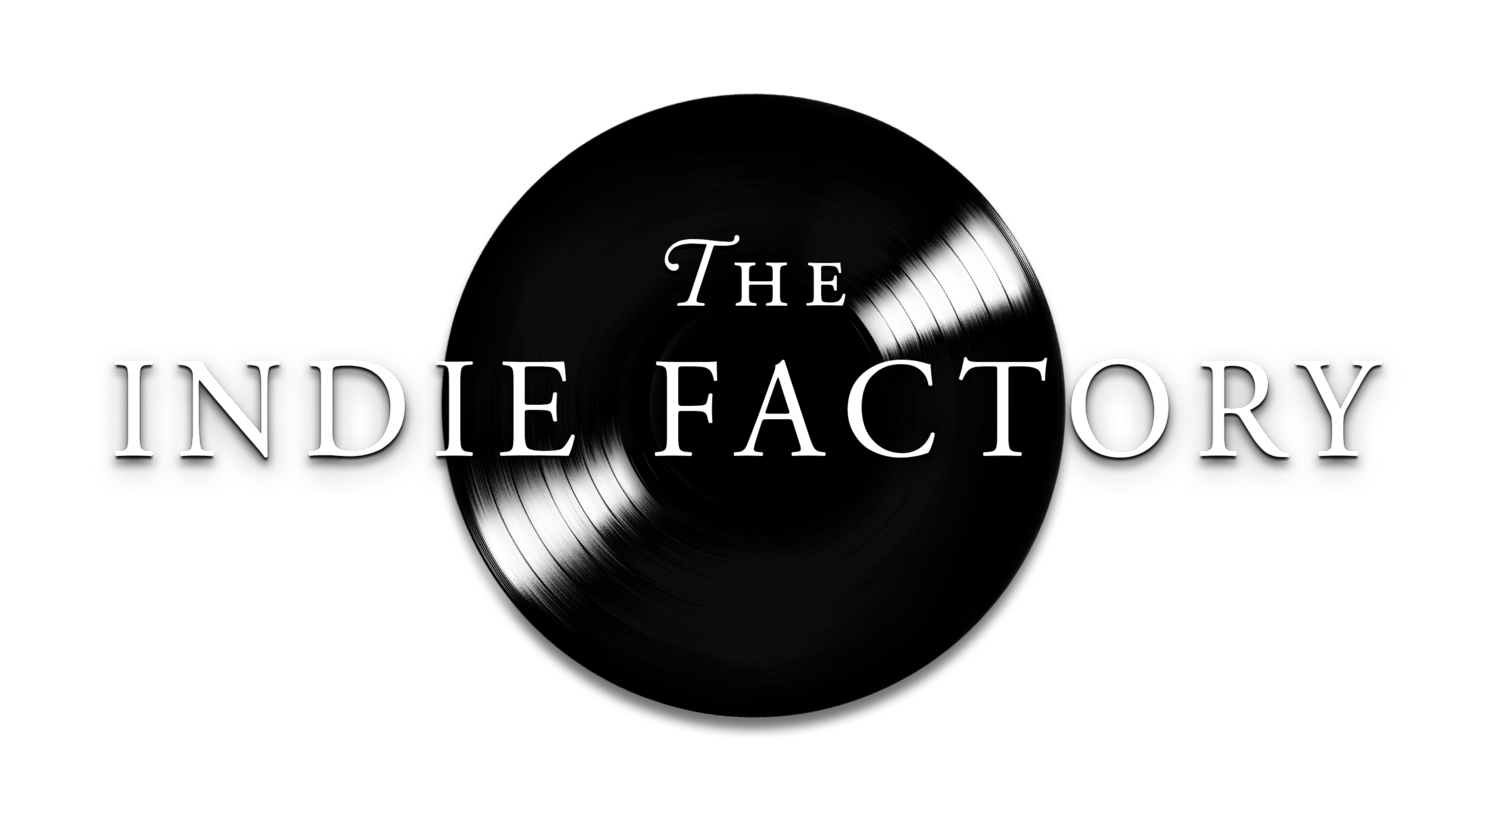 The Indie Factory